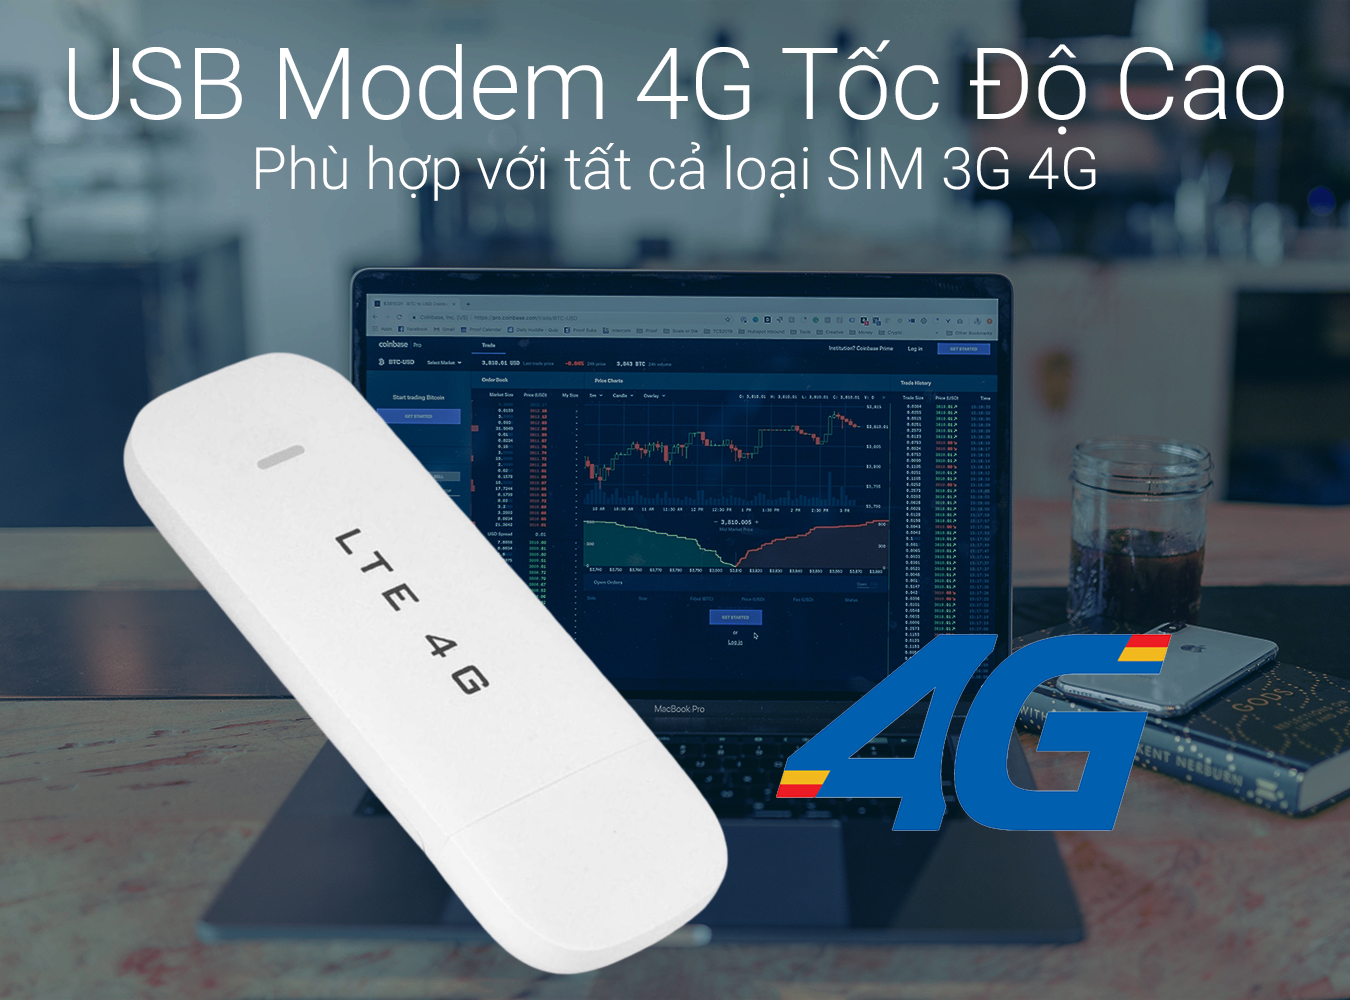 modem-9600-toc-do-cao